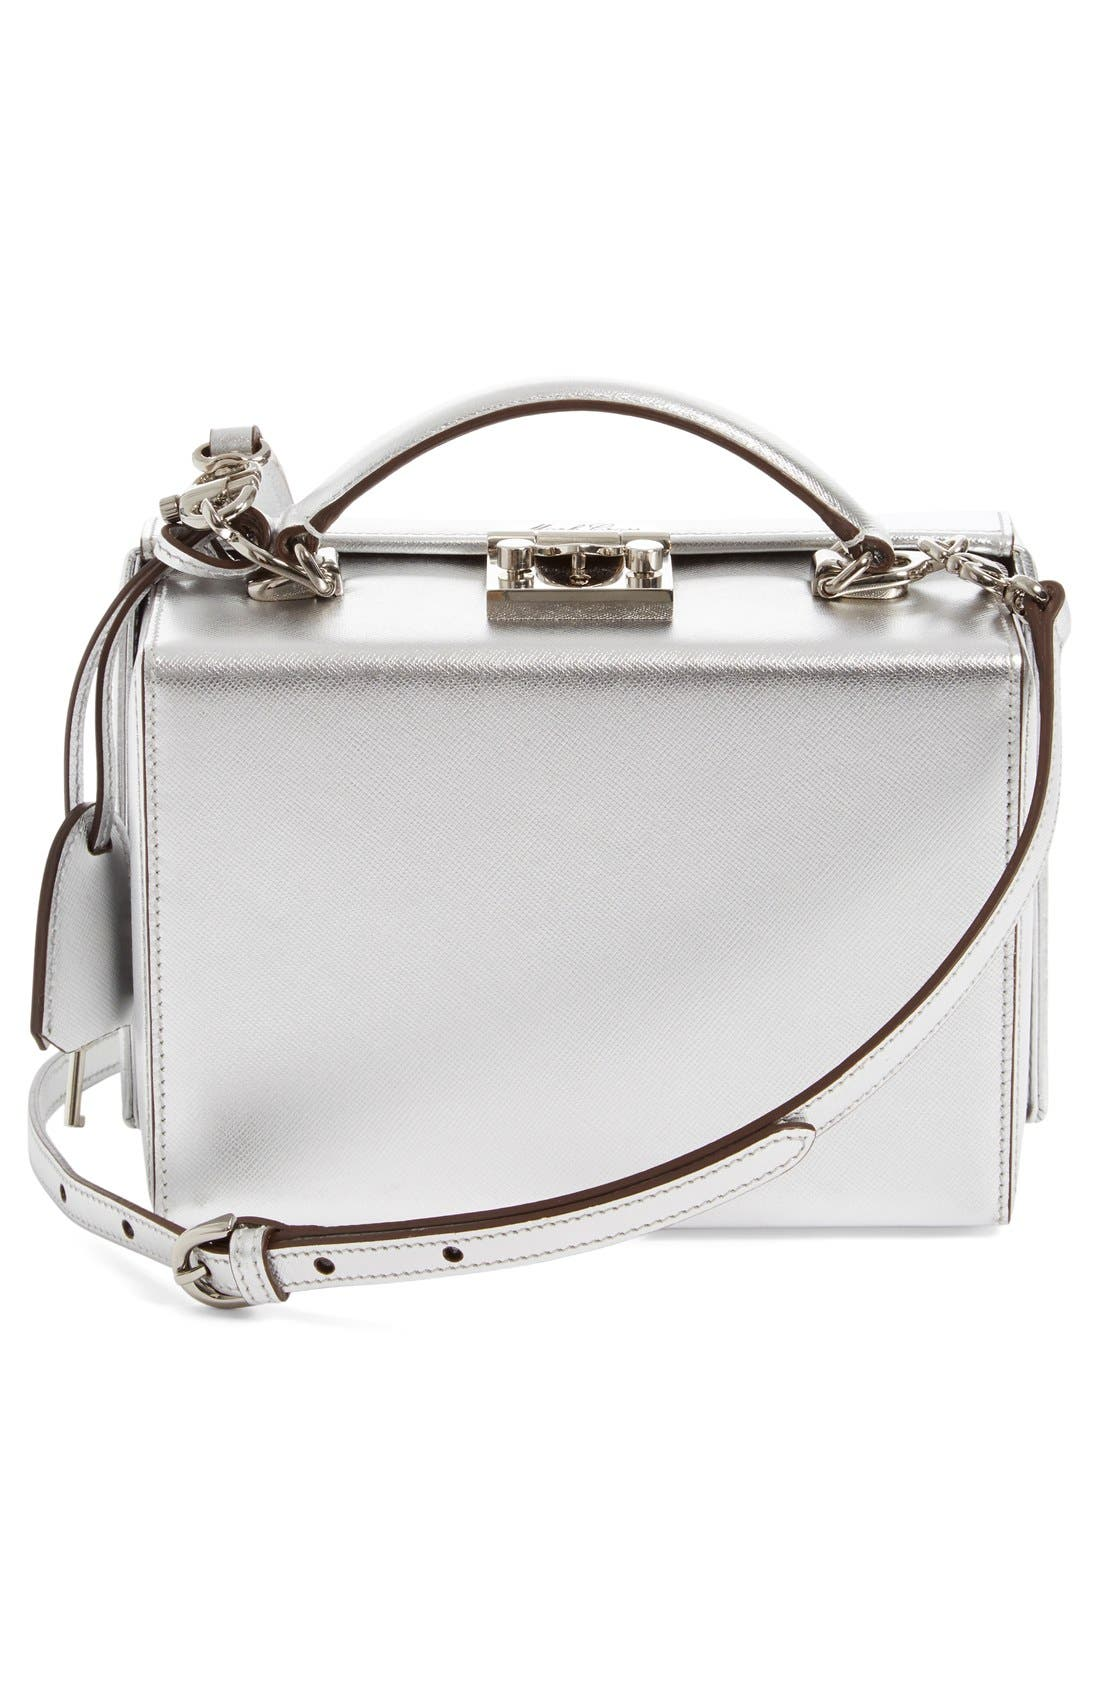 Alternate Image 2  - Mark Cross 'Small Grace' Metallic Saffiano Leather Box Clutch